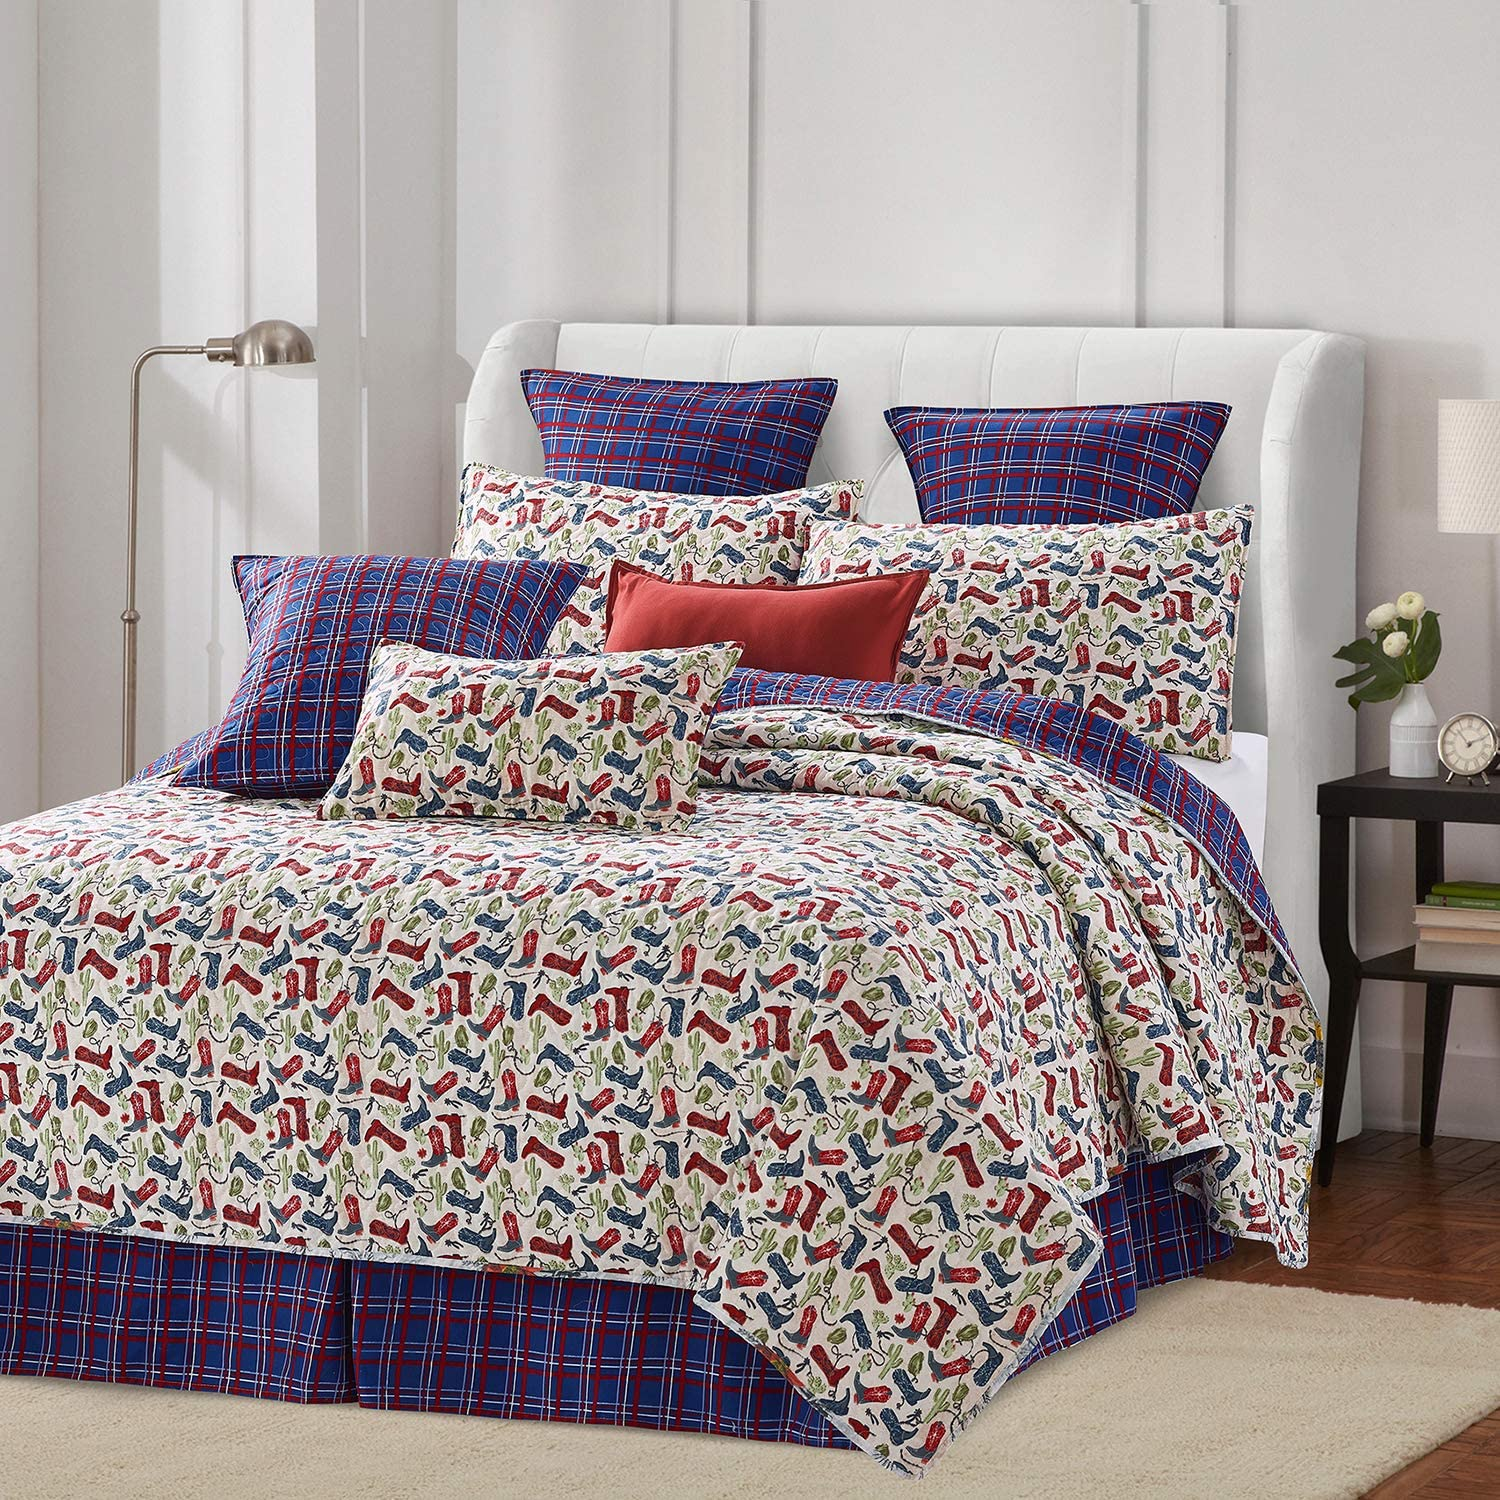 Virah Bella Western Love Western Bedding Set - Full/Queen Quilt and Standard Shams with Cowboy Boots Print